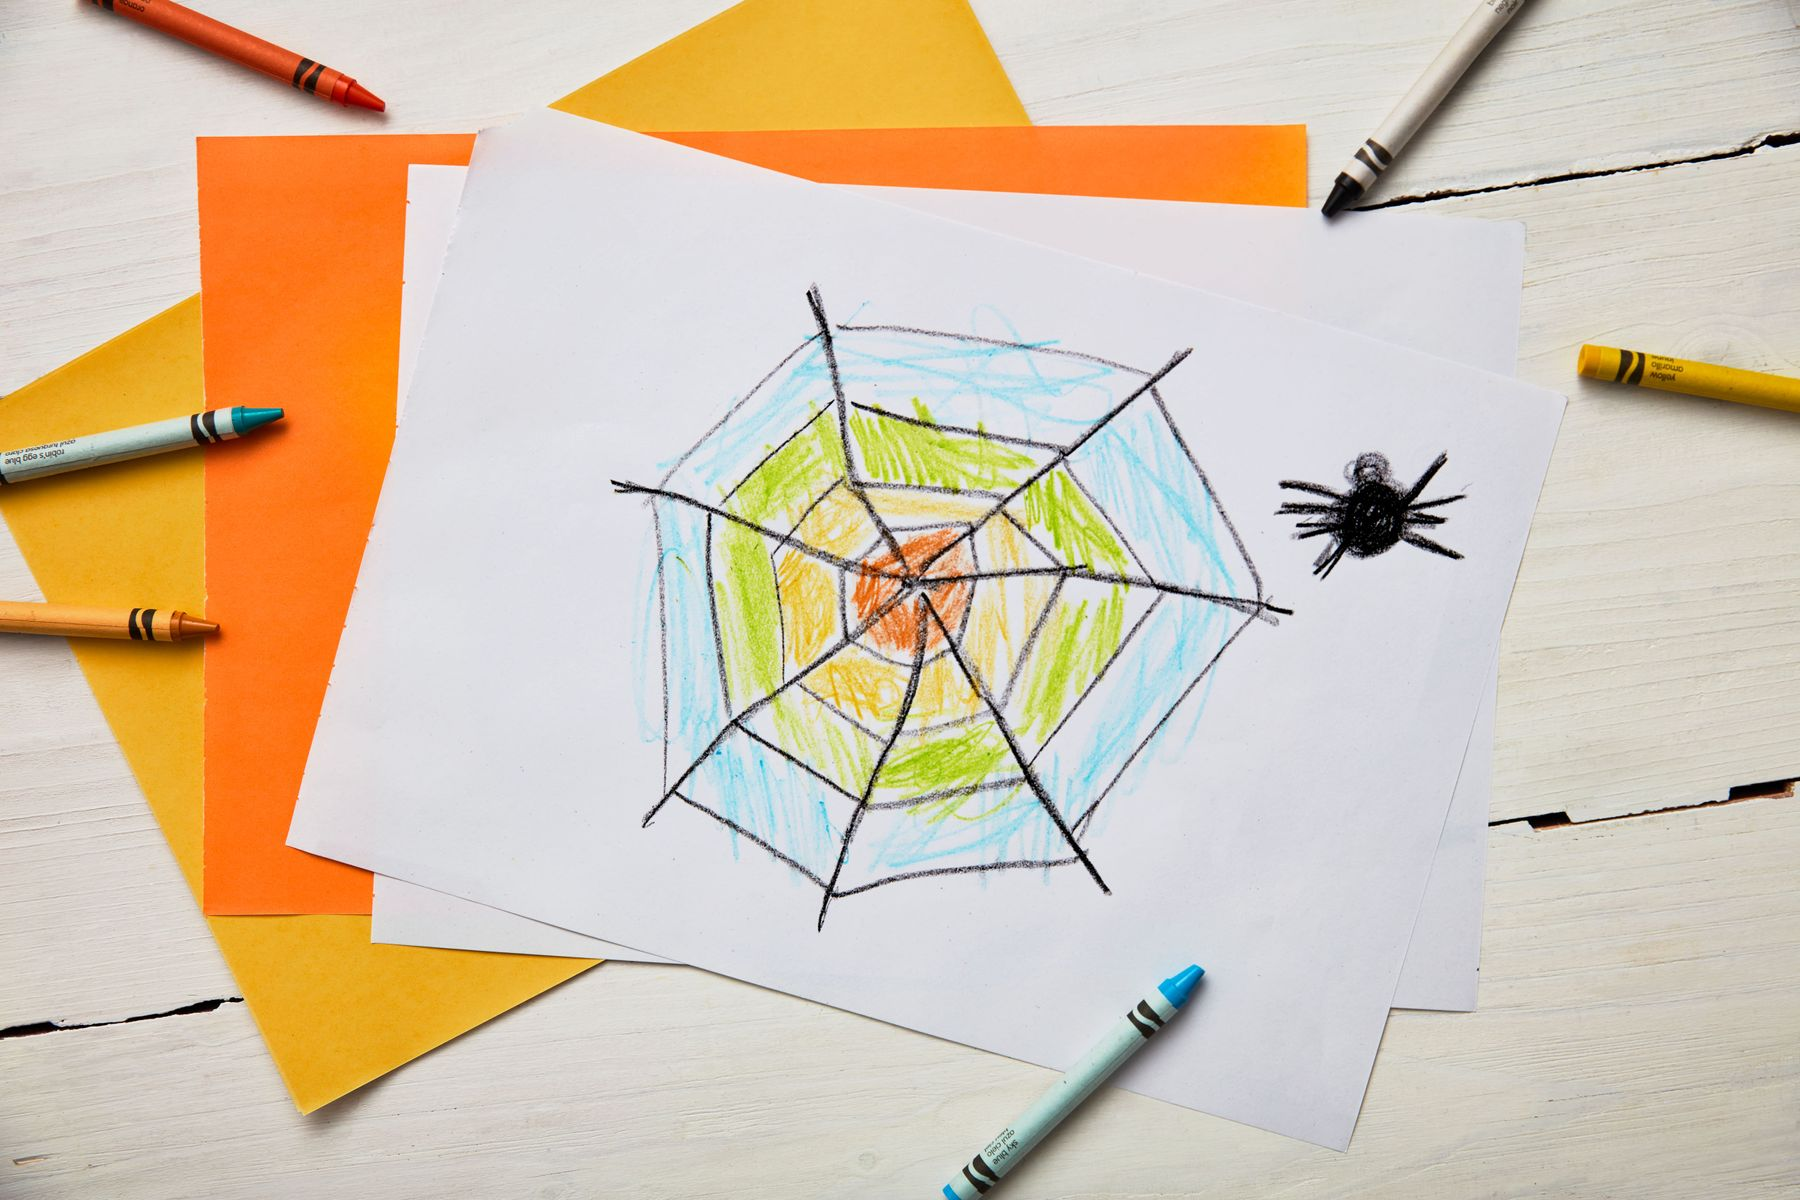 recycling for kids - Kids Crayon Drawing Of Spider Web